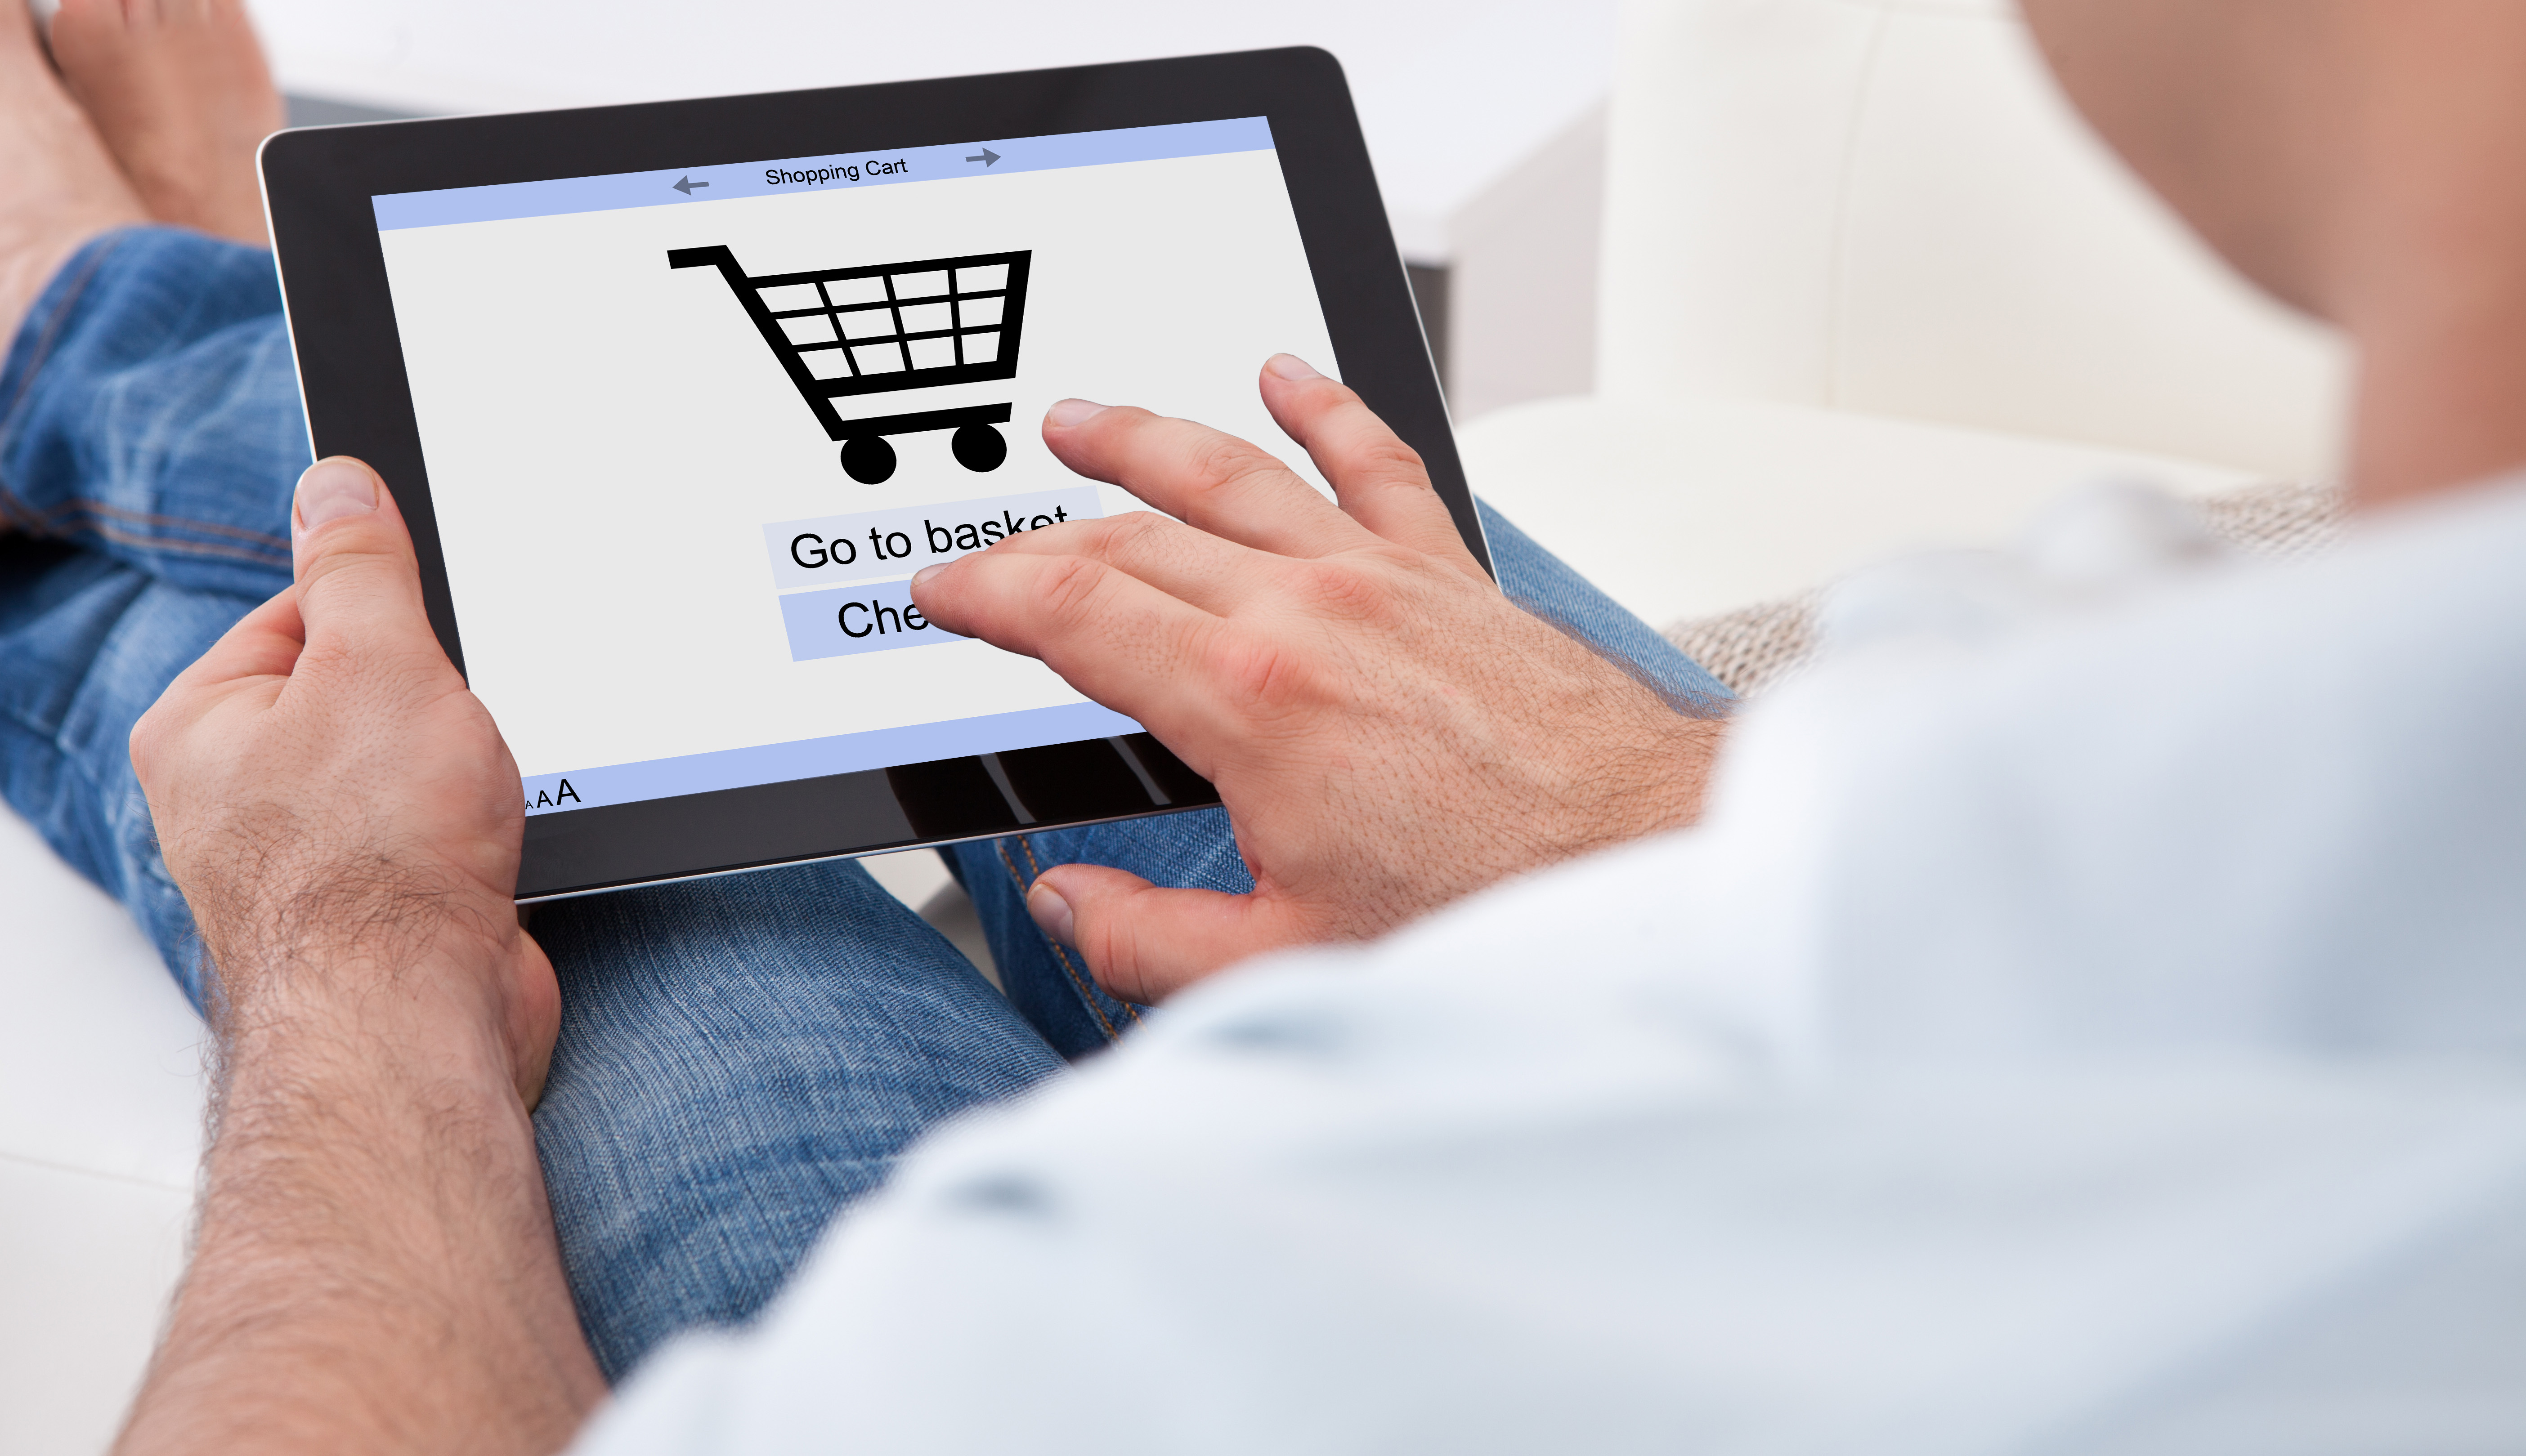 Web sees huge surge in overseas shoppers for UK retailers